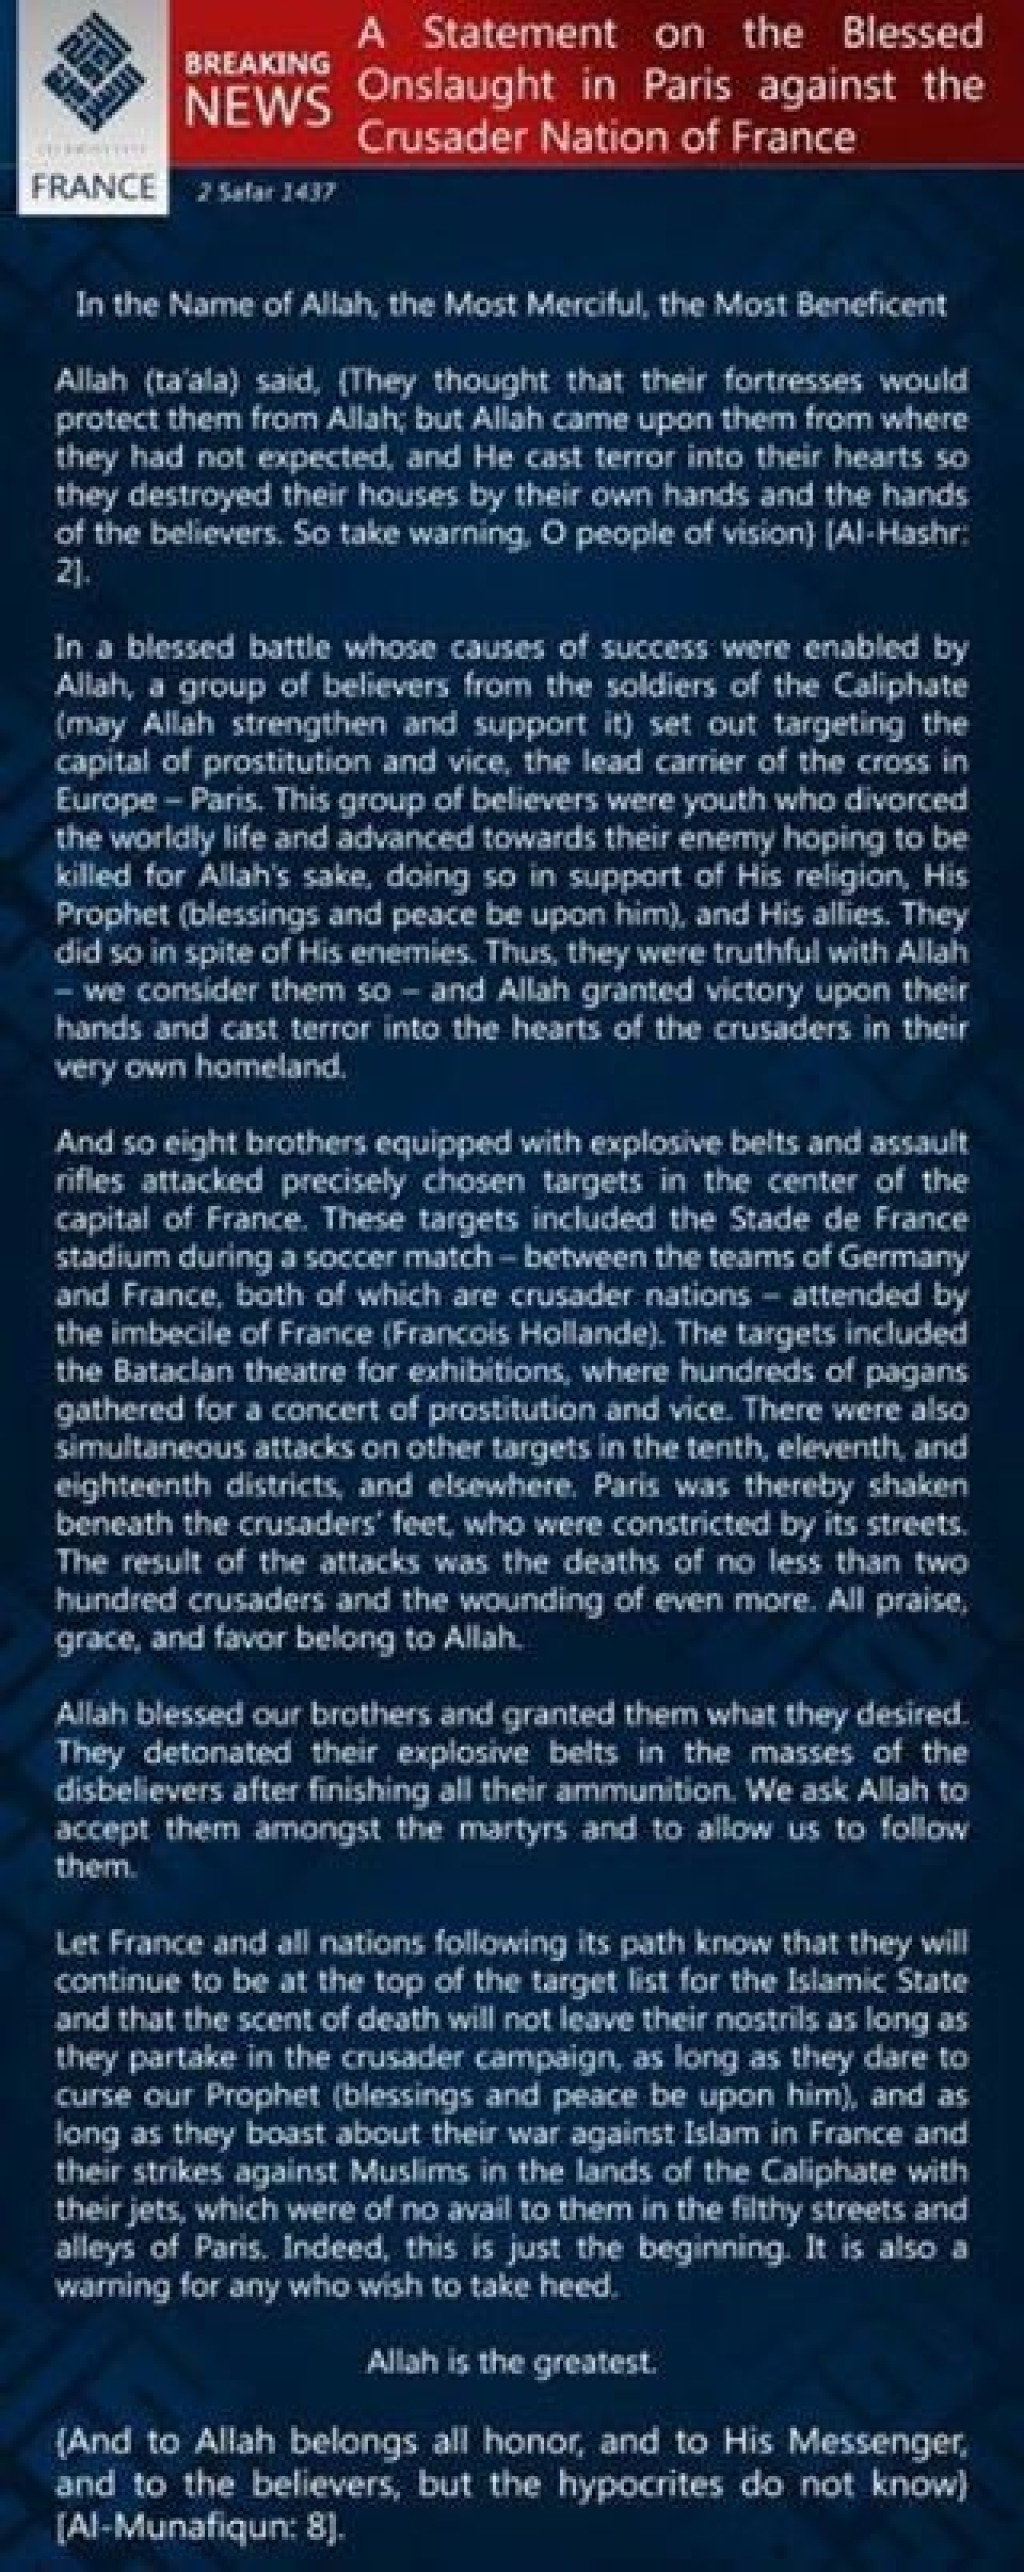 15-11-14 Islamic State claims Paris attacks